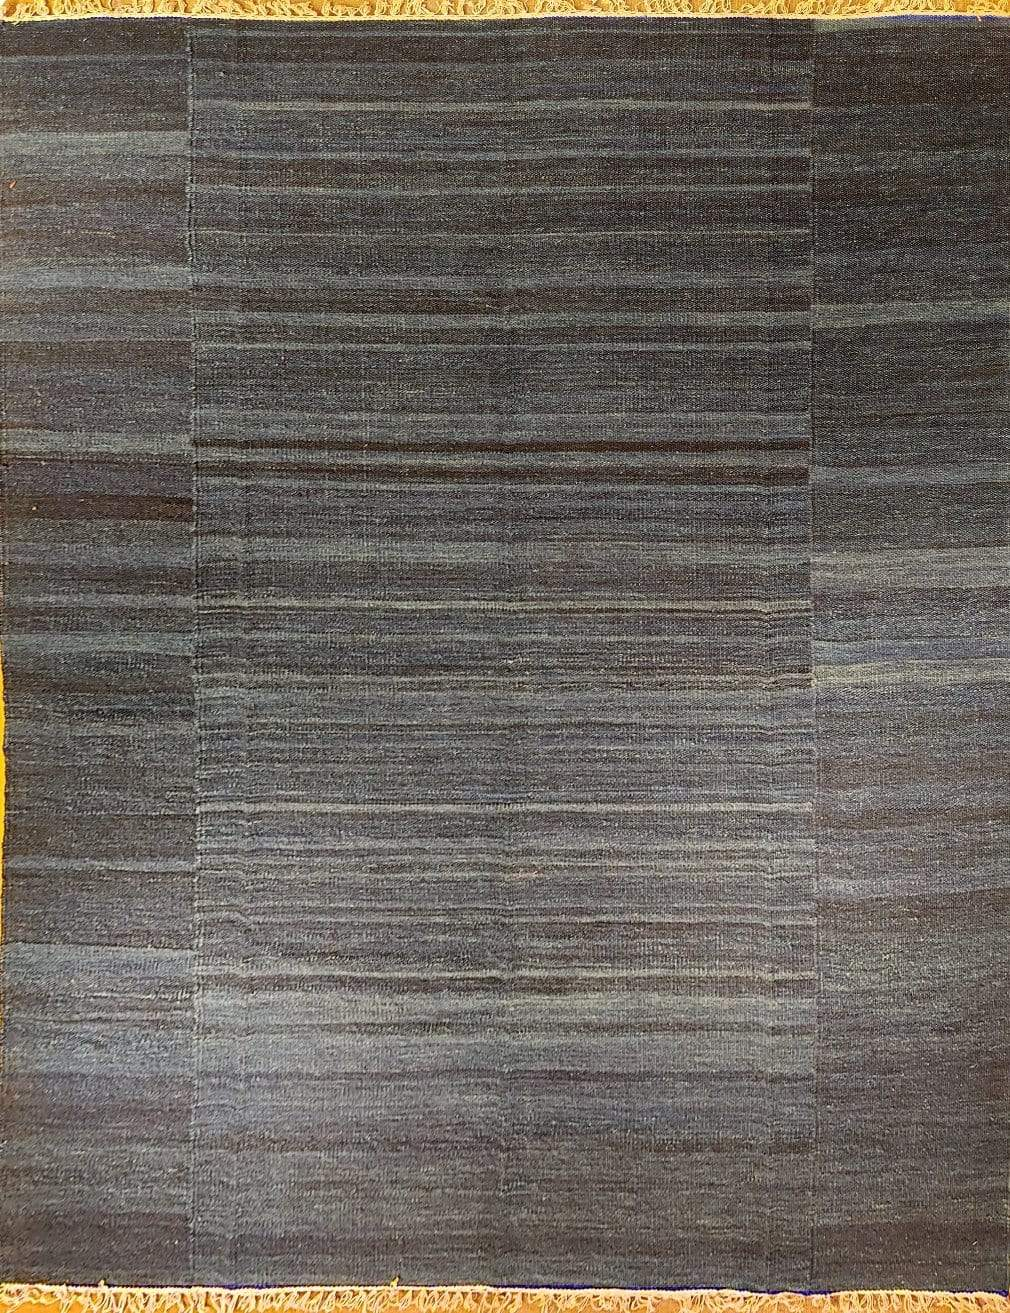 The Rugs Cafe Dhurries 7.6x9.6 / Blue Blue Colored Handwoven Linear cum Striped Rug [Handwoven]